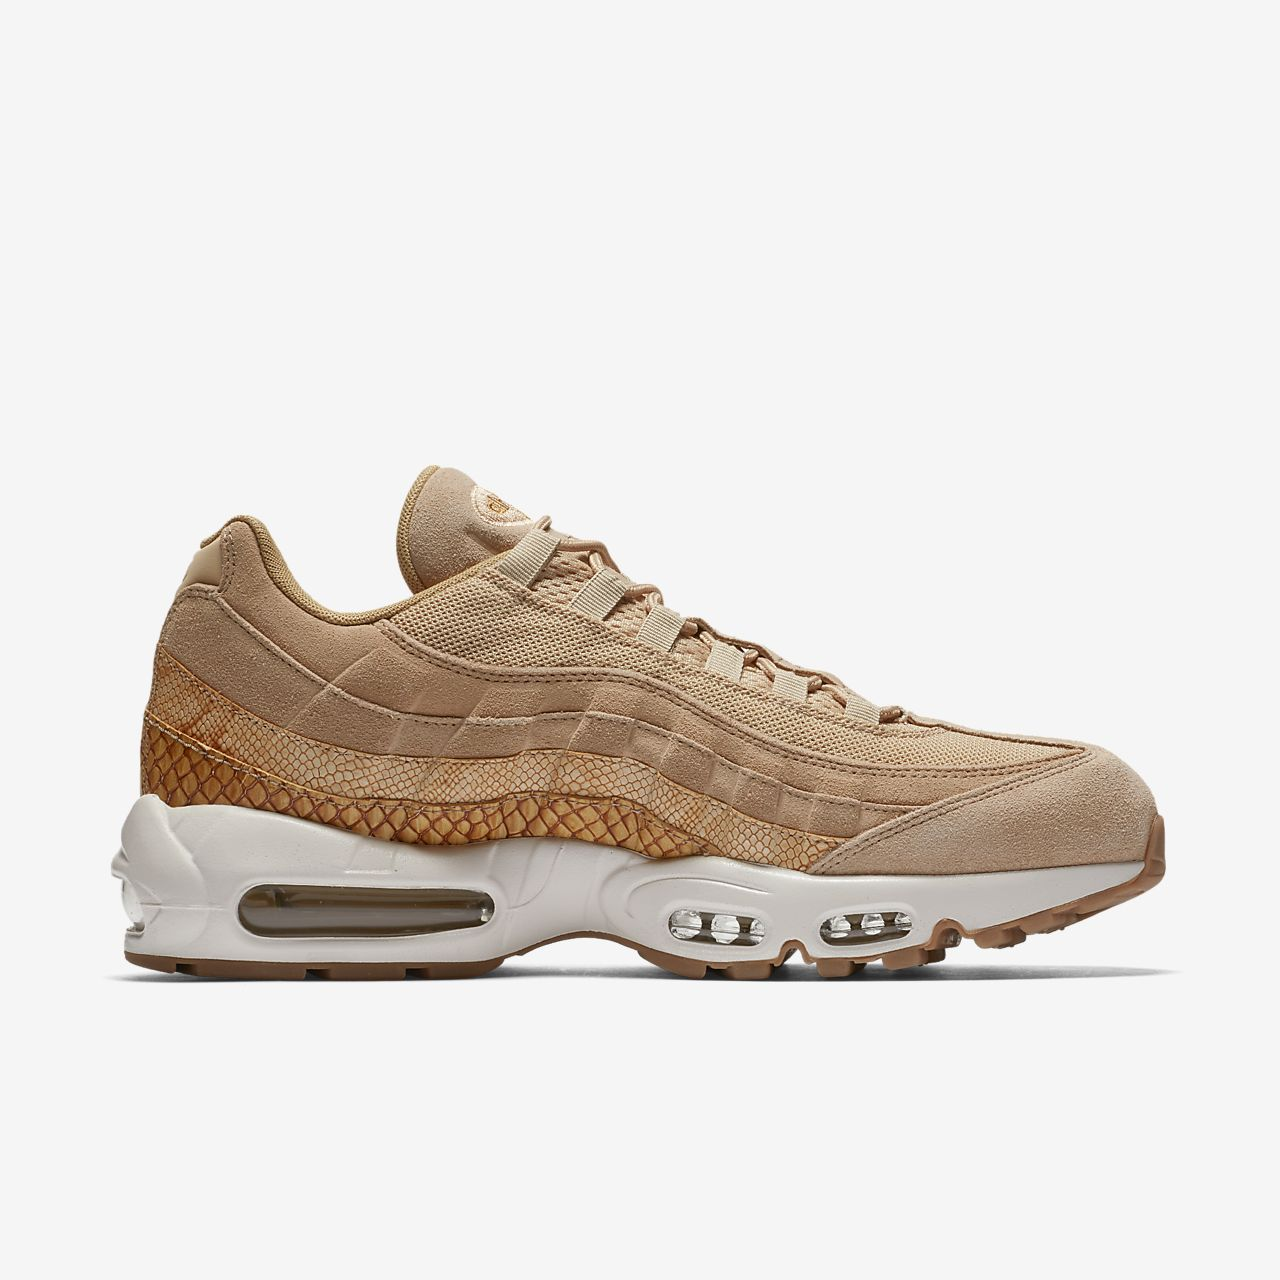 nike air max premium 1 id nz